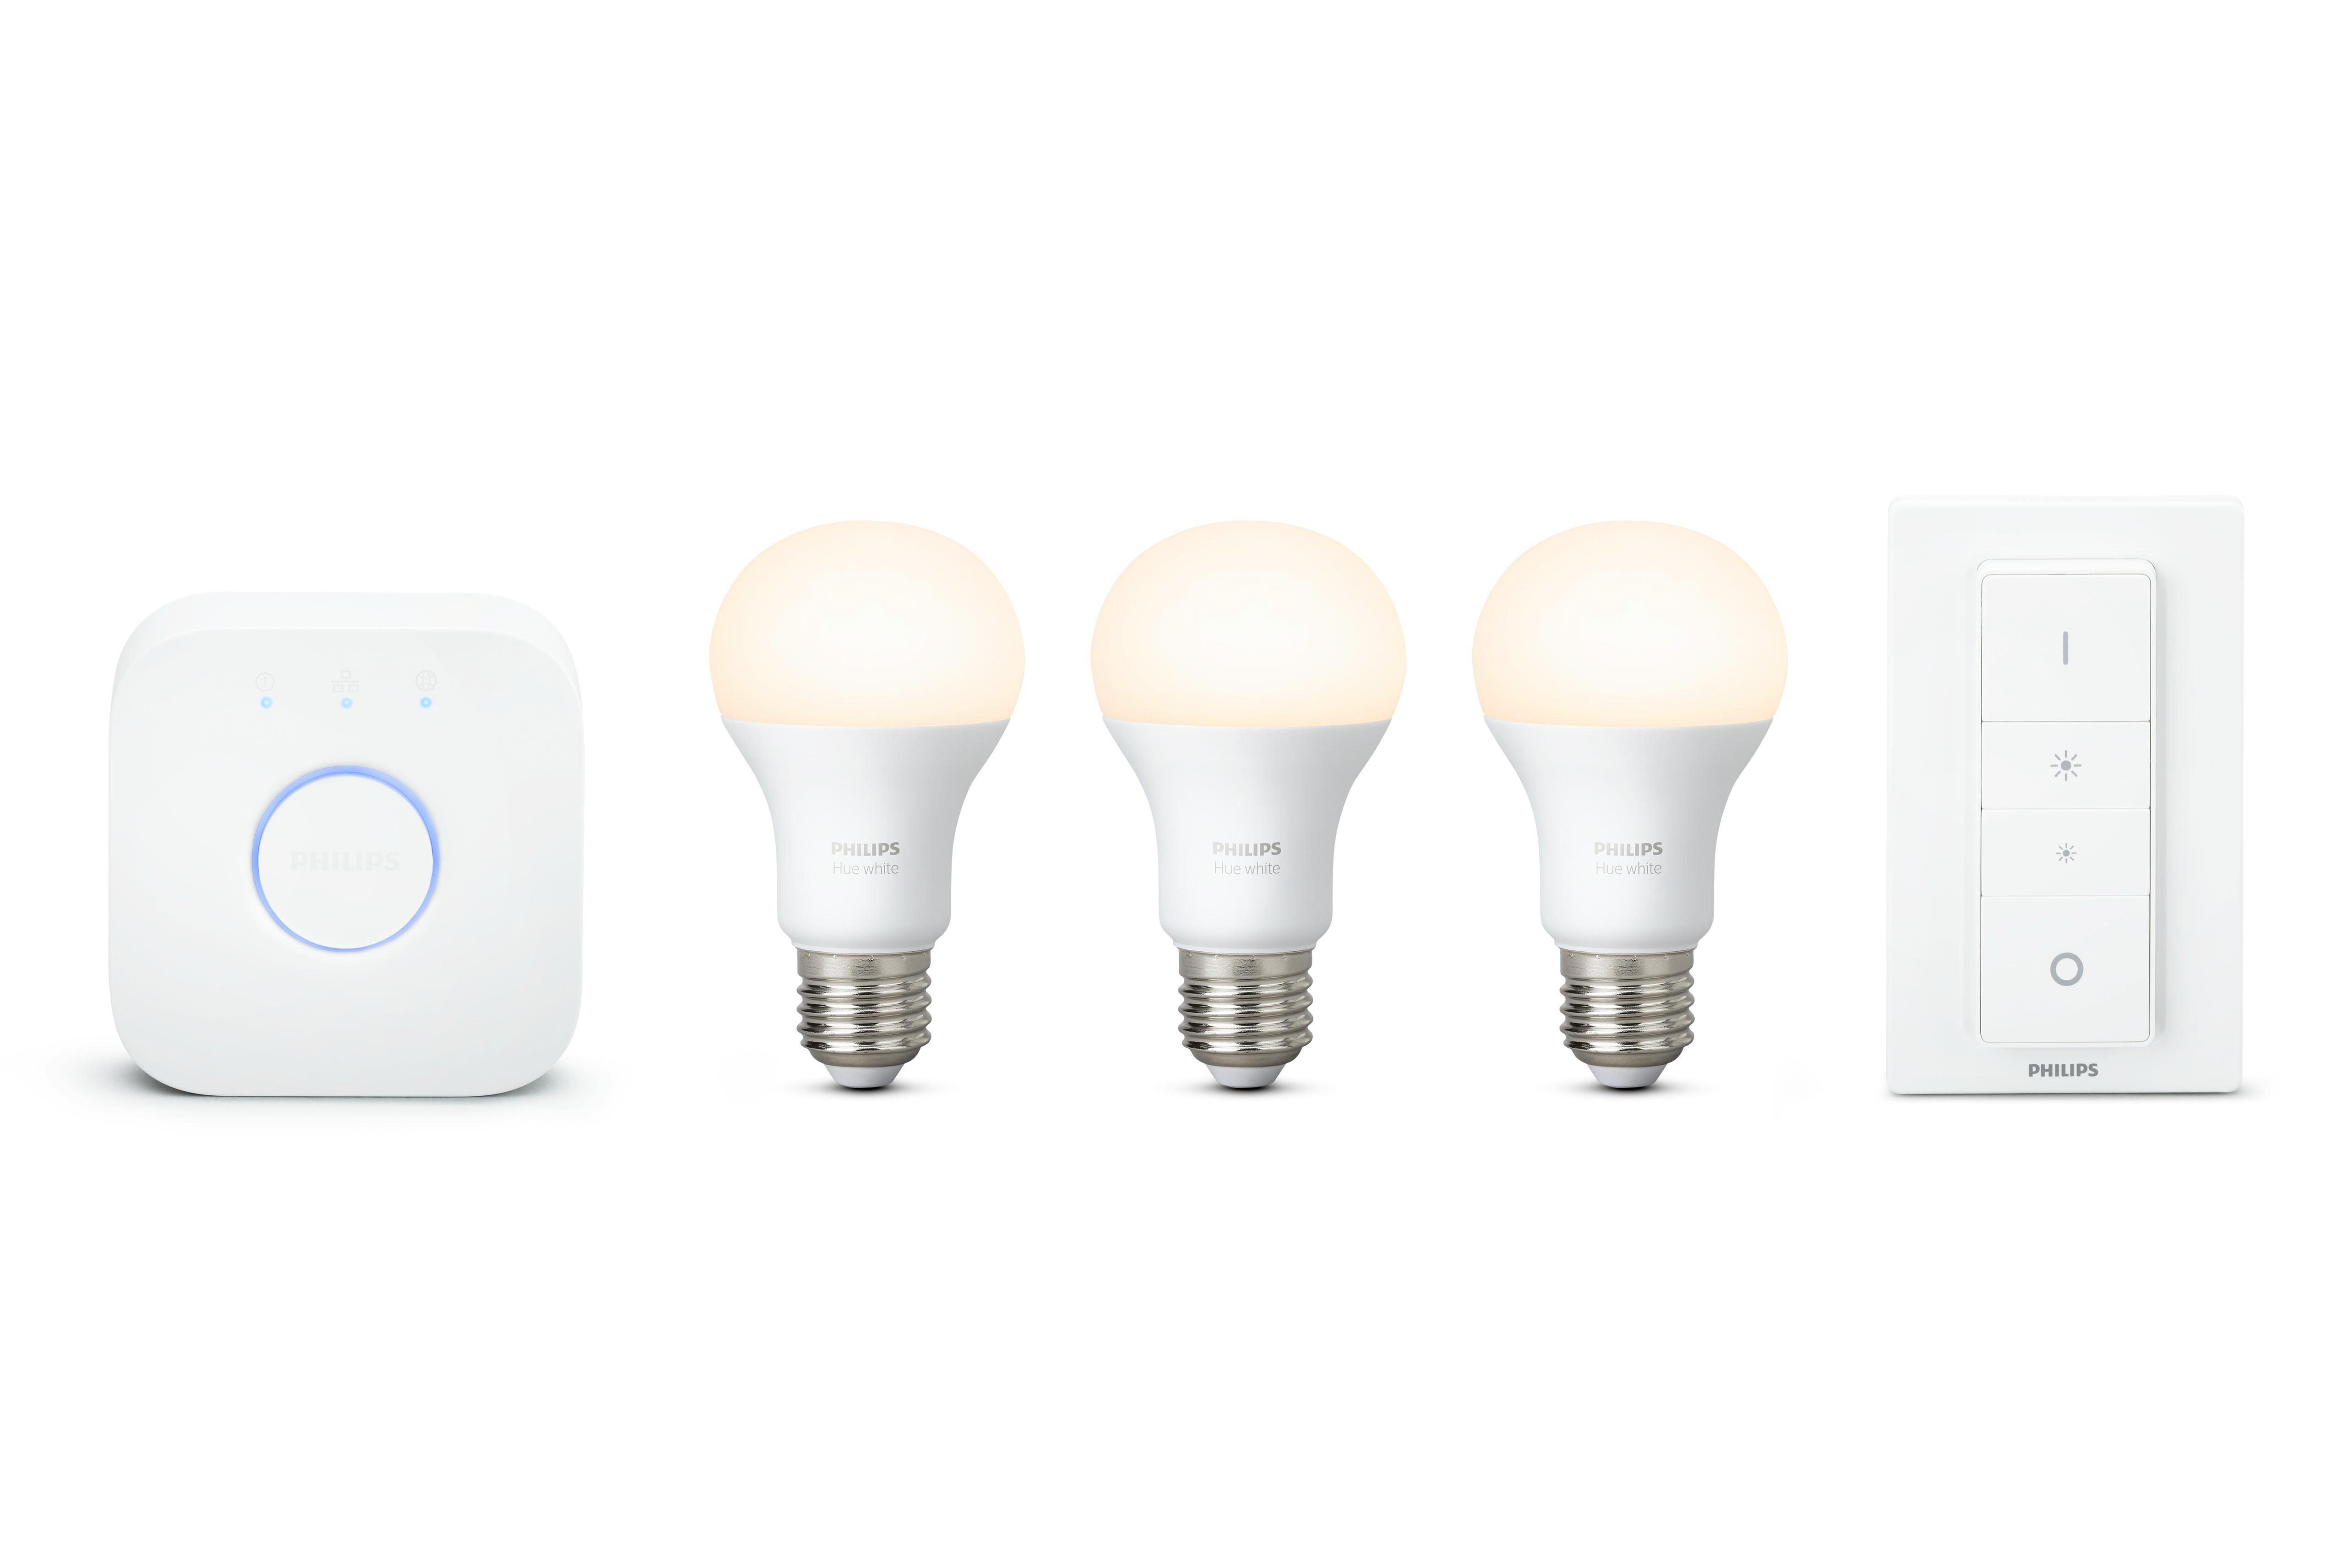 Hue Lampen Kopen : Dimmer voor philips led lampen philips hue white ambiance